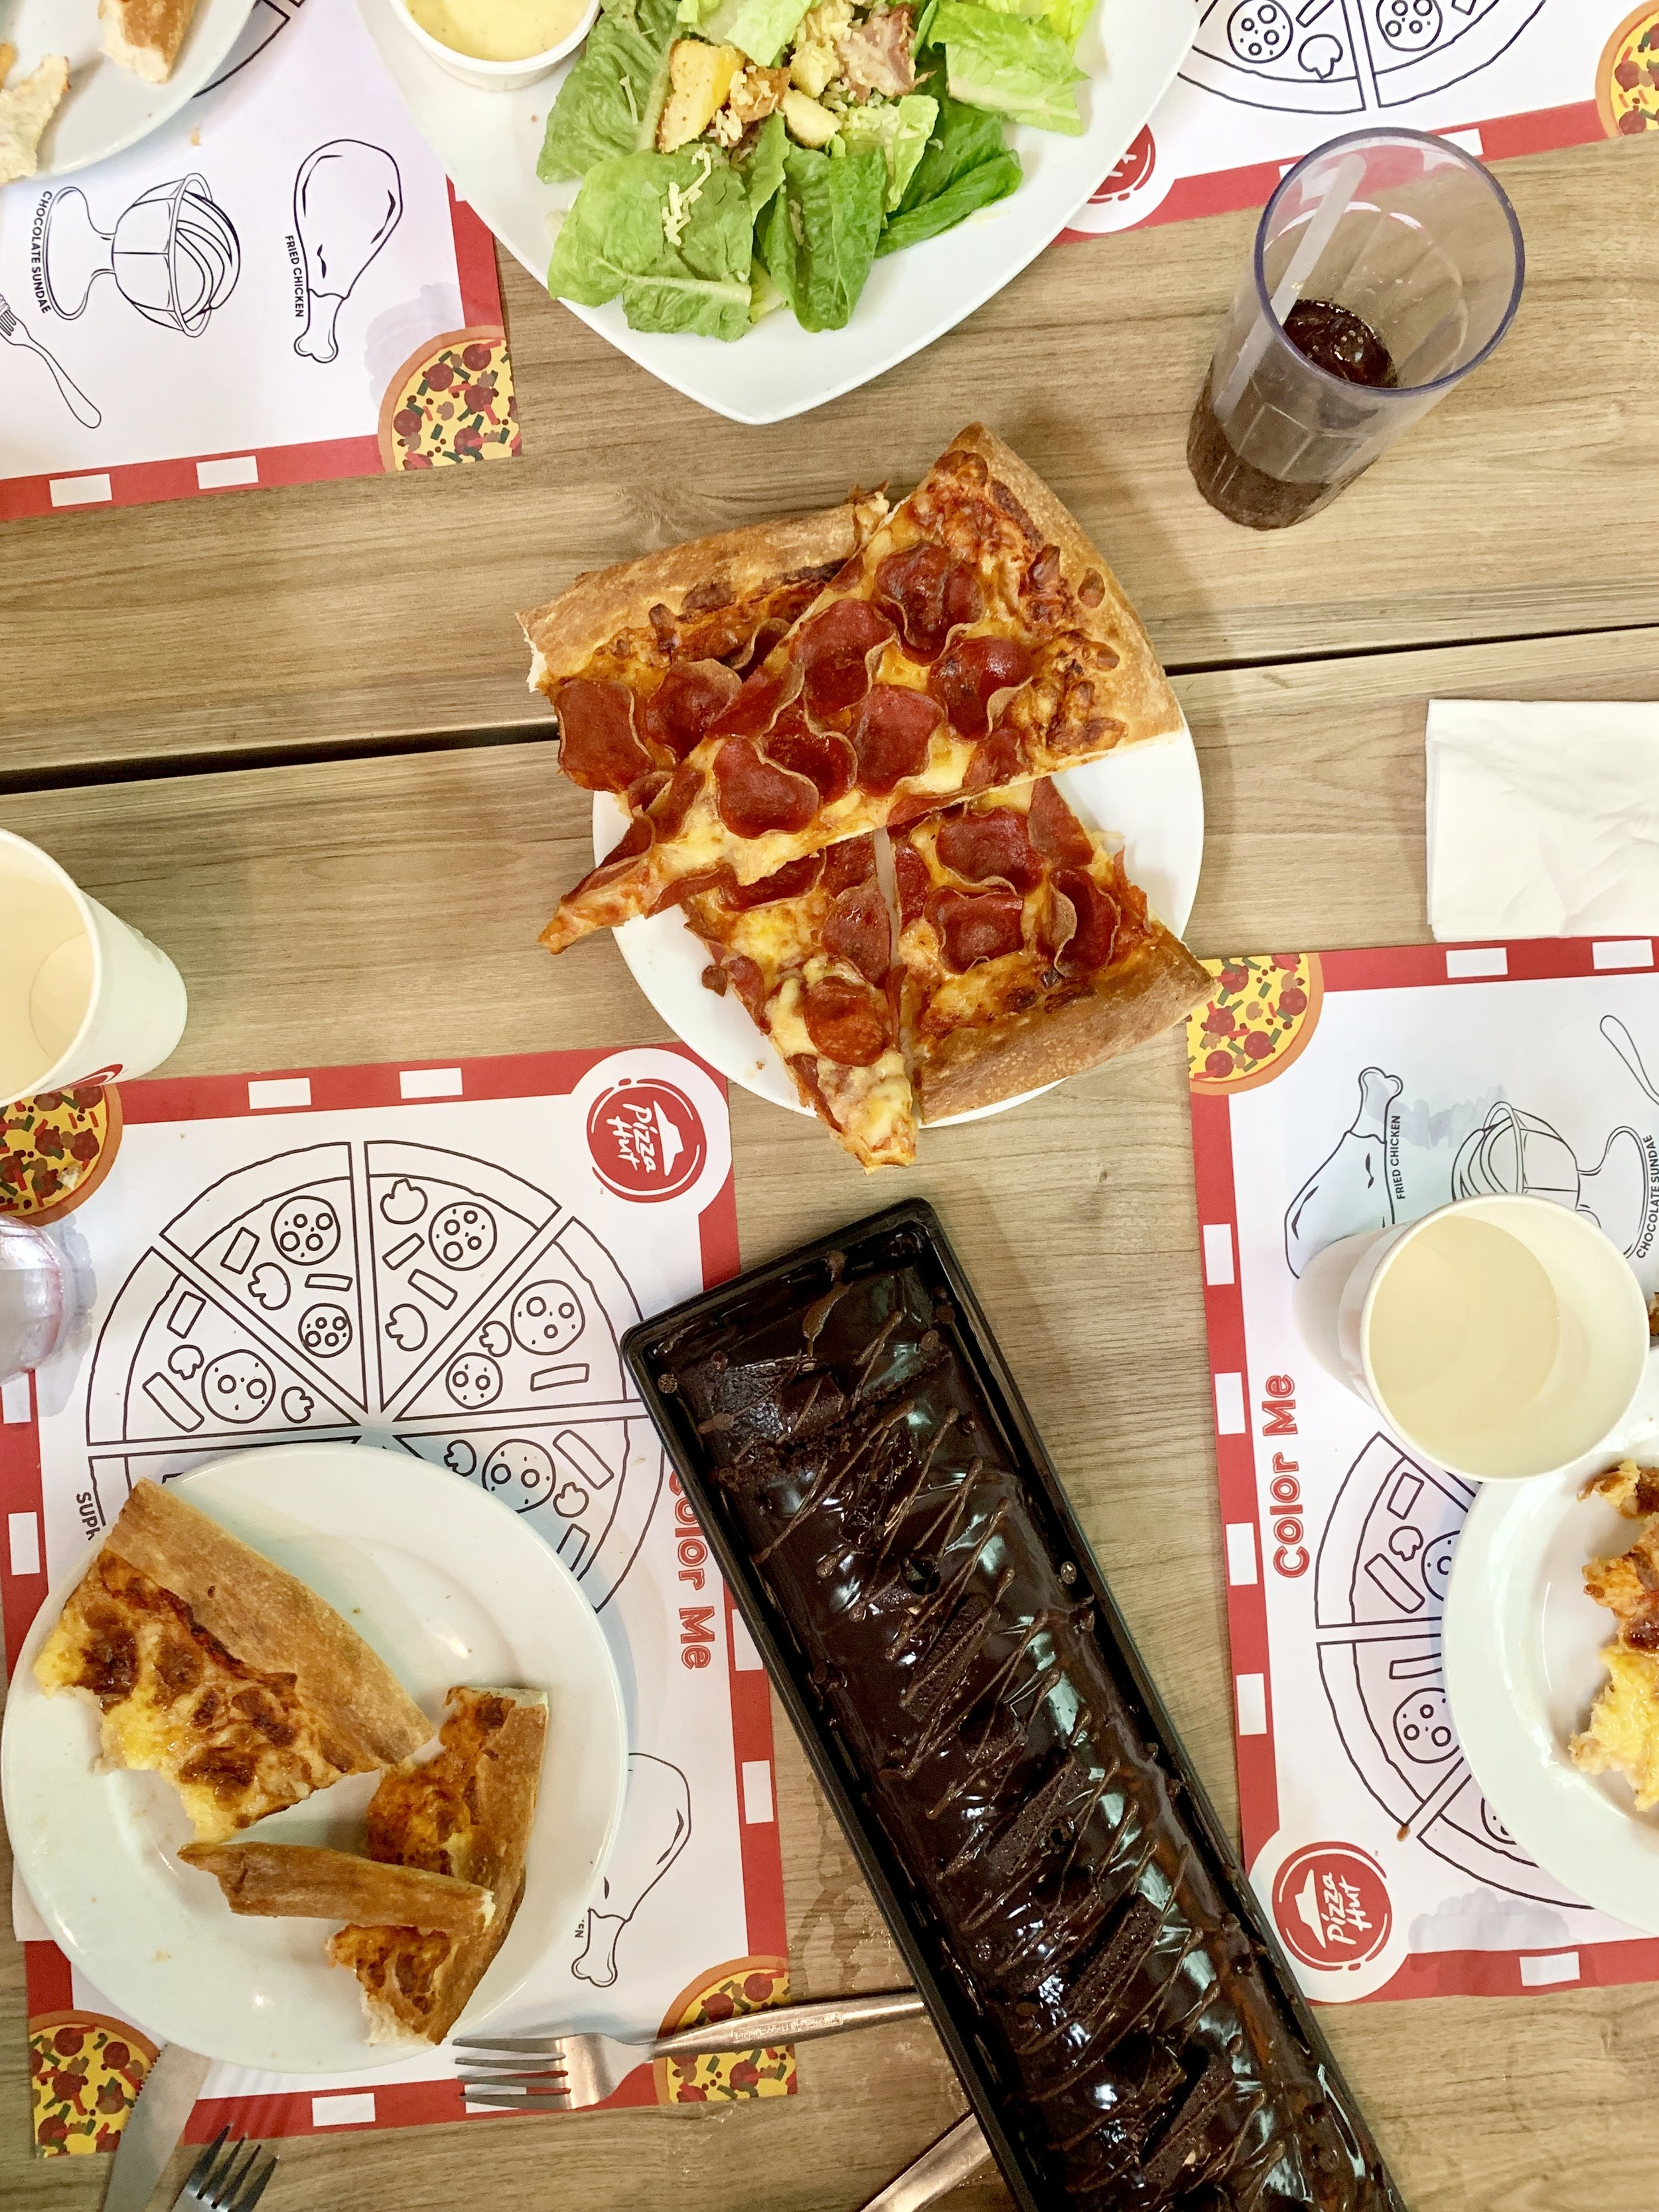 Pizza Hut, Root Beer (very American ha!) and Red Ribbon Triple Chocolate Roll. -